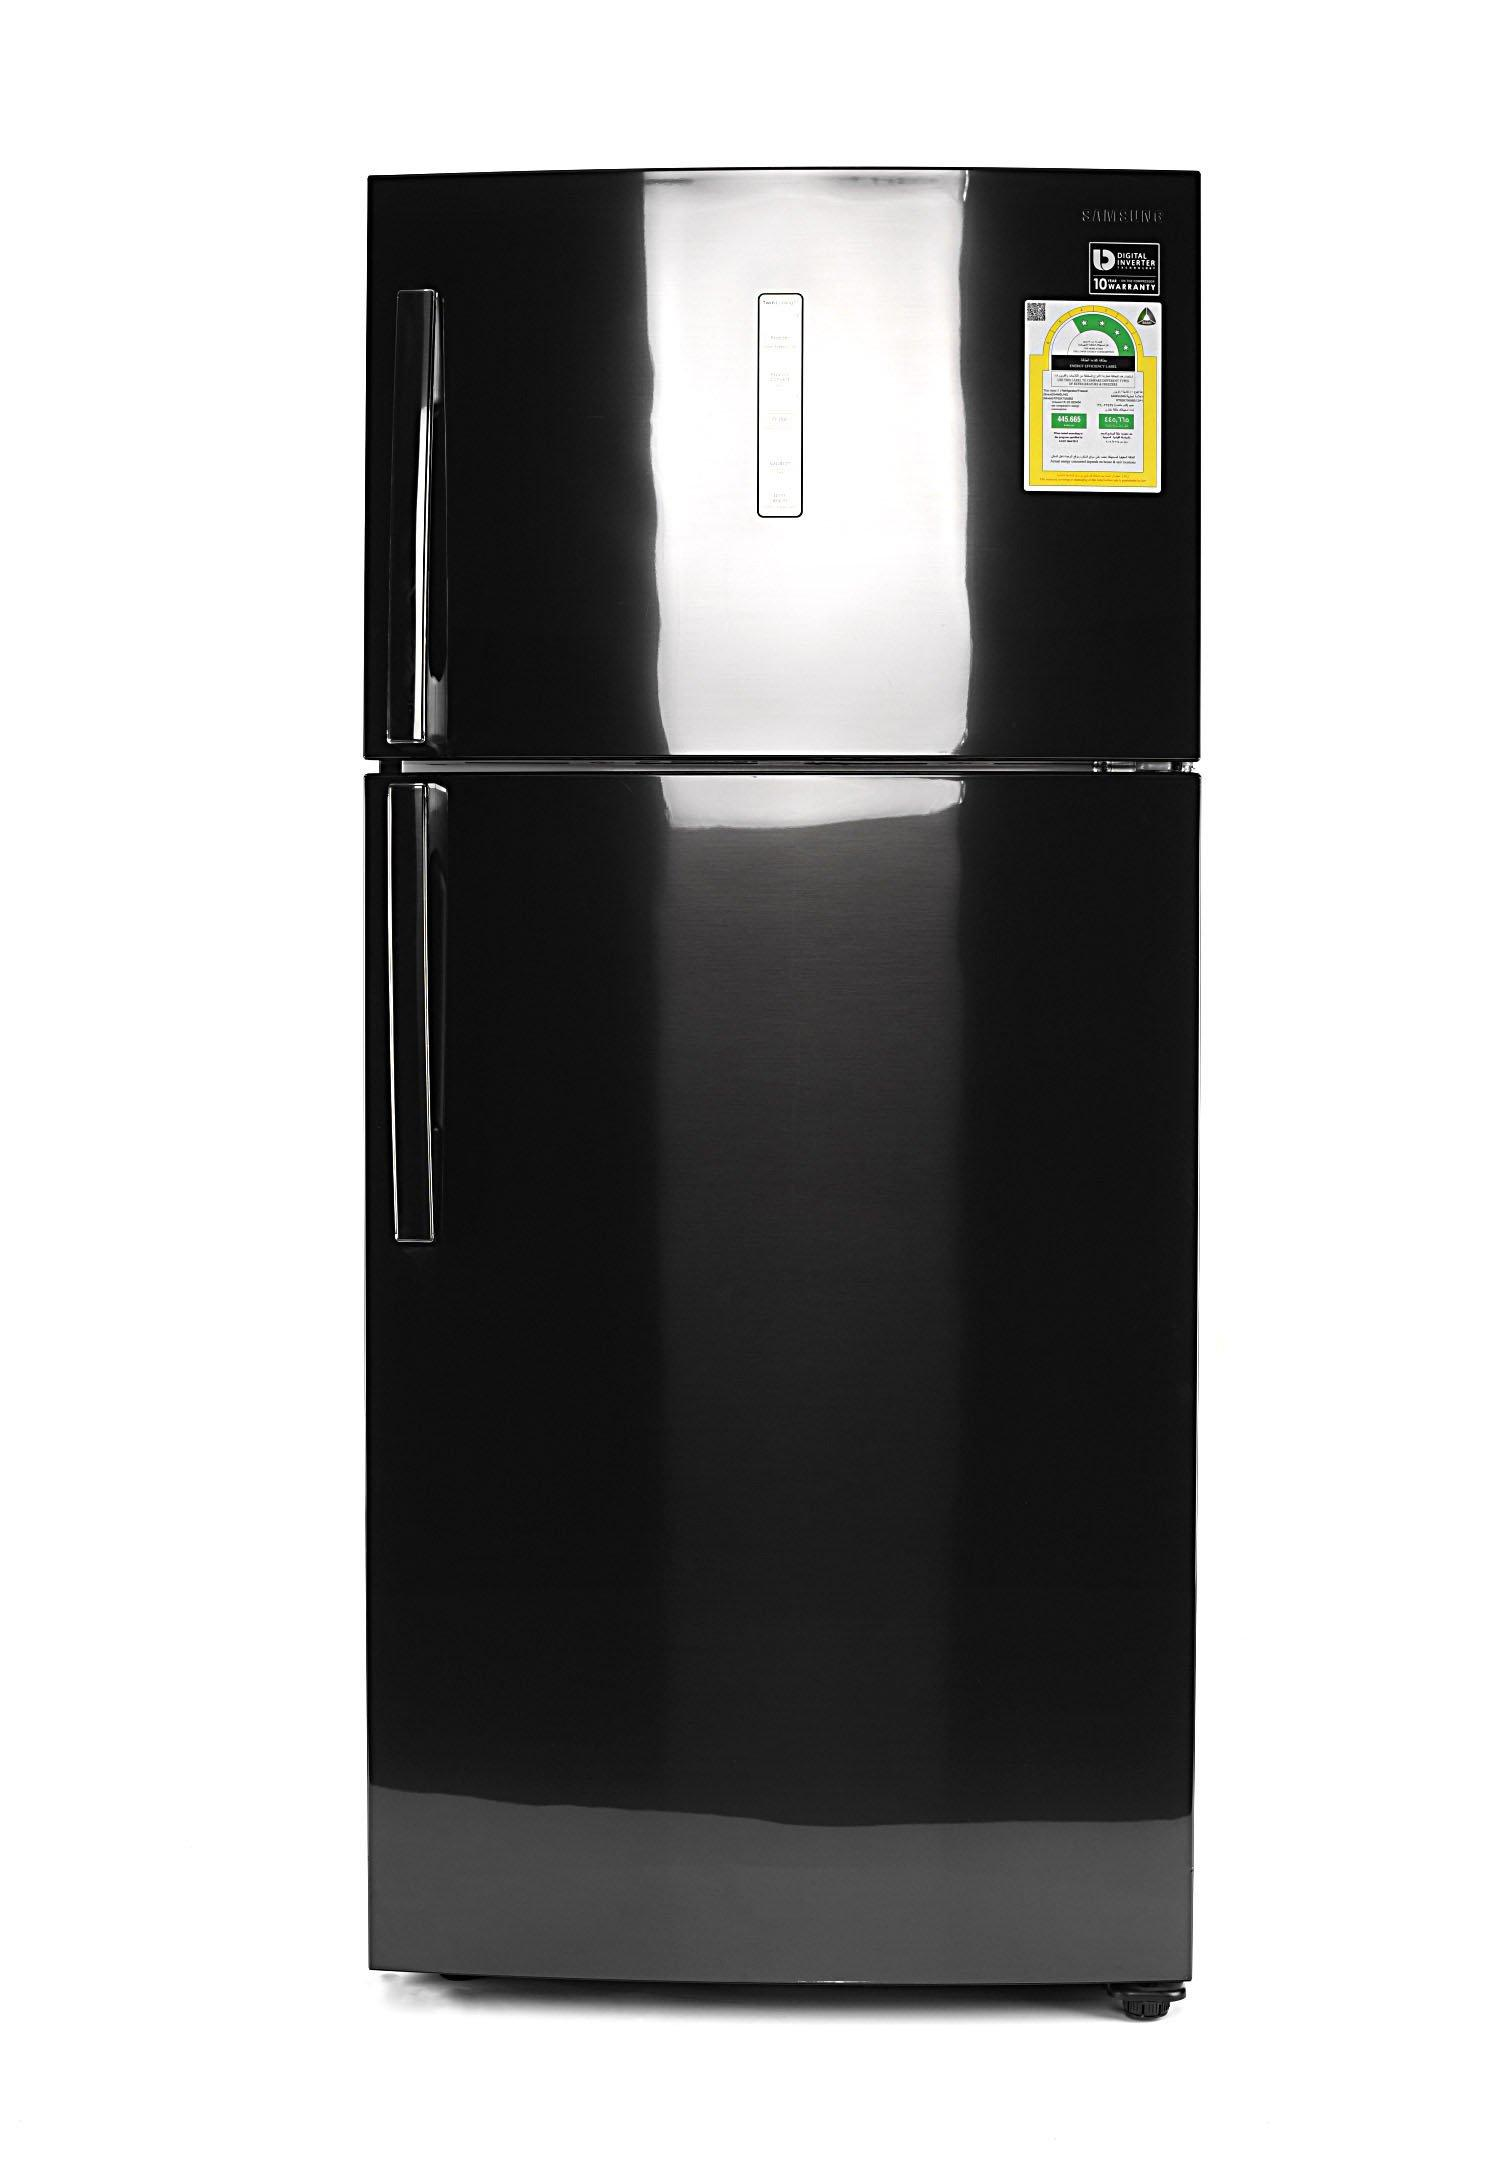 Samsung Refrigerator, 22 Cu.ft, Black Stainless